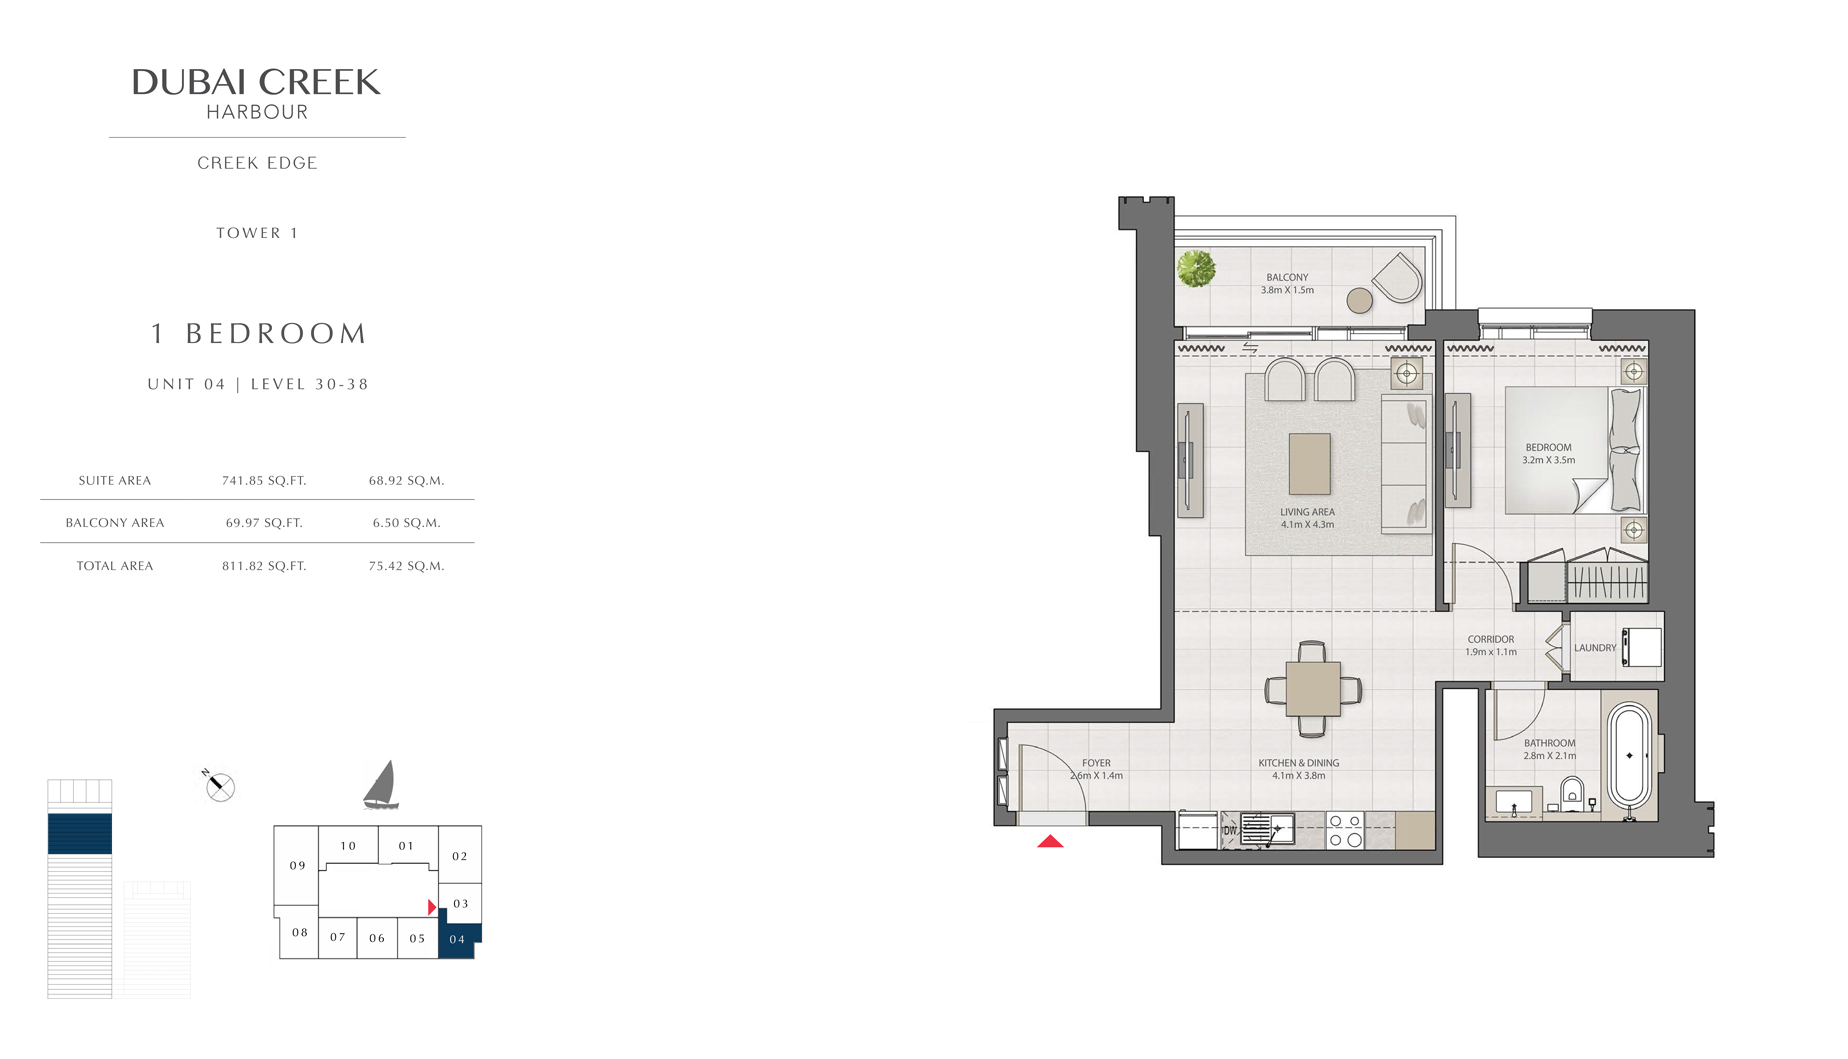 1 Bedroom Tower 1 Unit 04 Level 30-38 Size 811 sq.ft